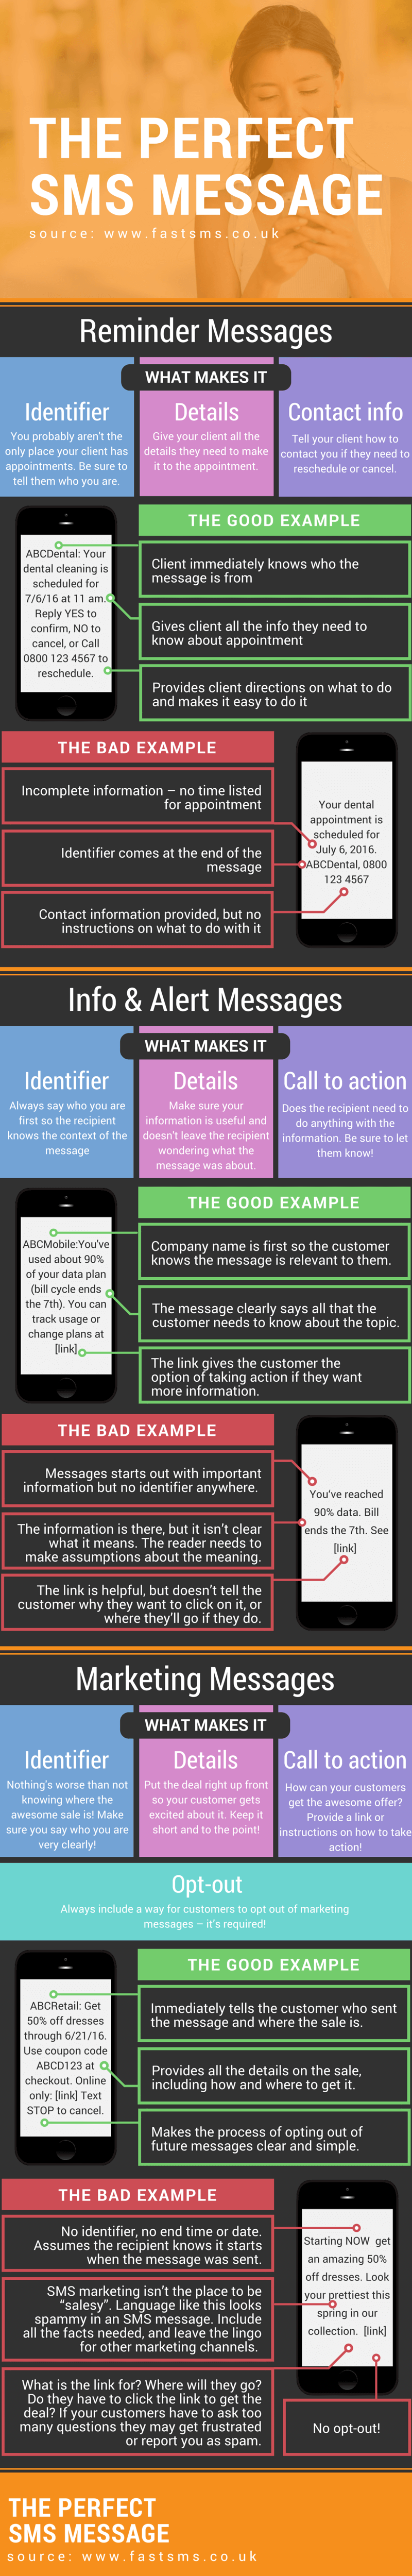 How to Write the Perfect SMS Message